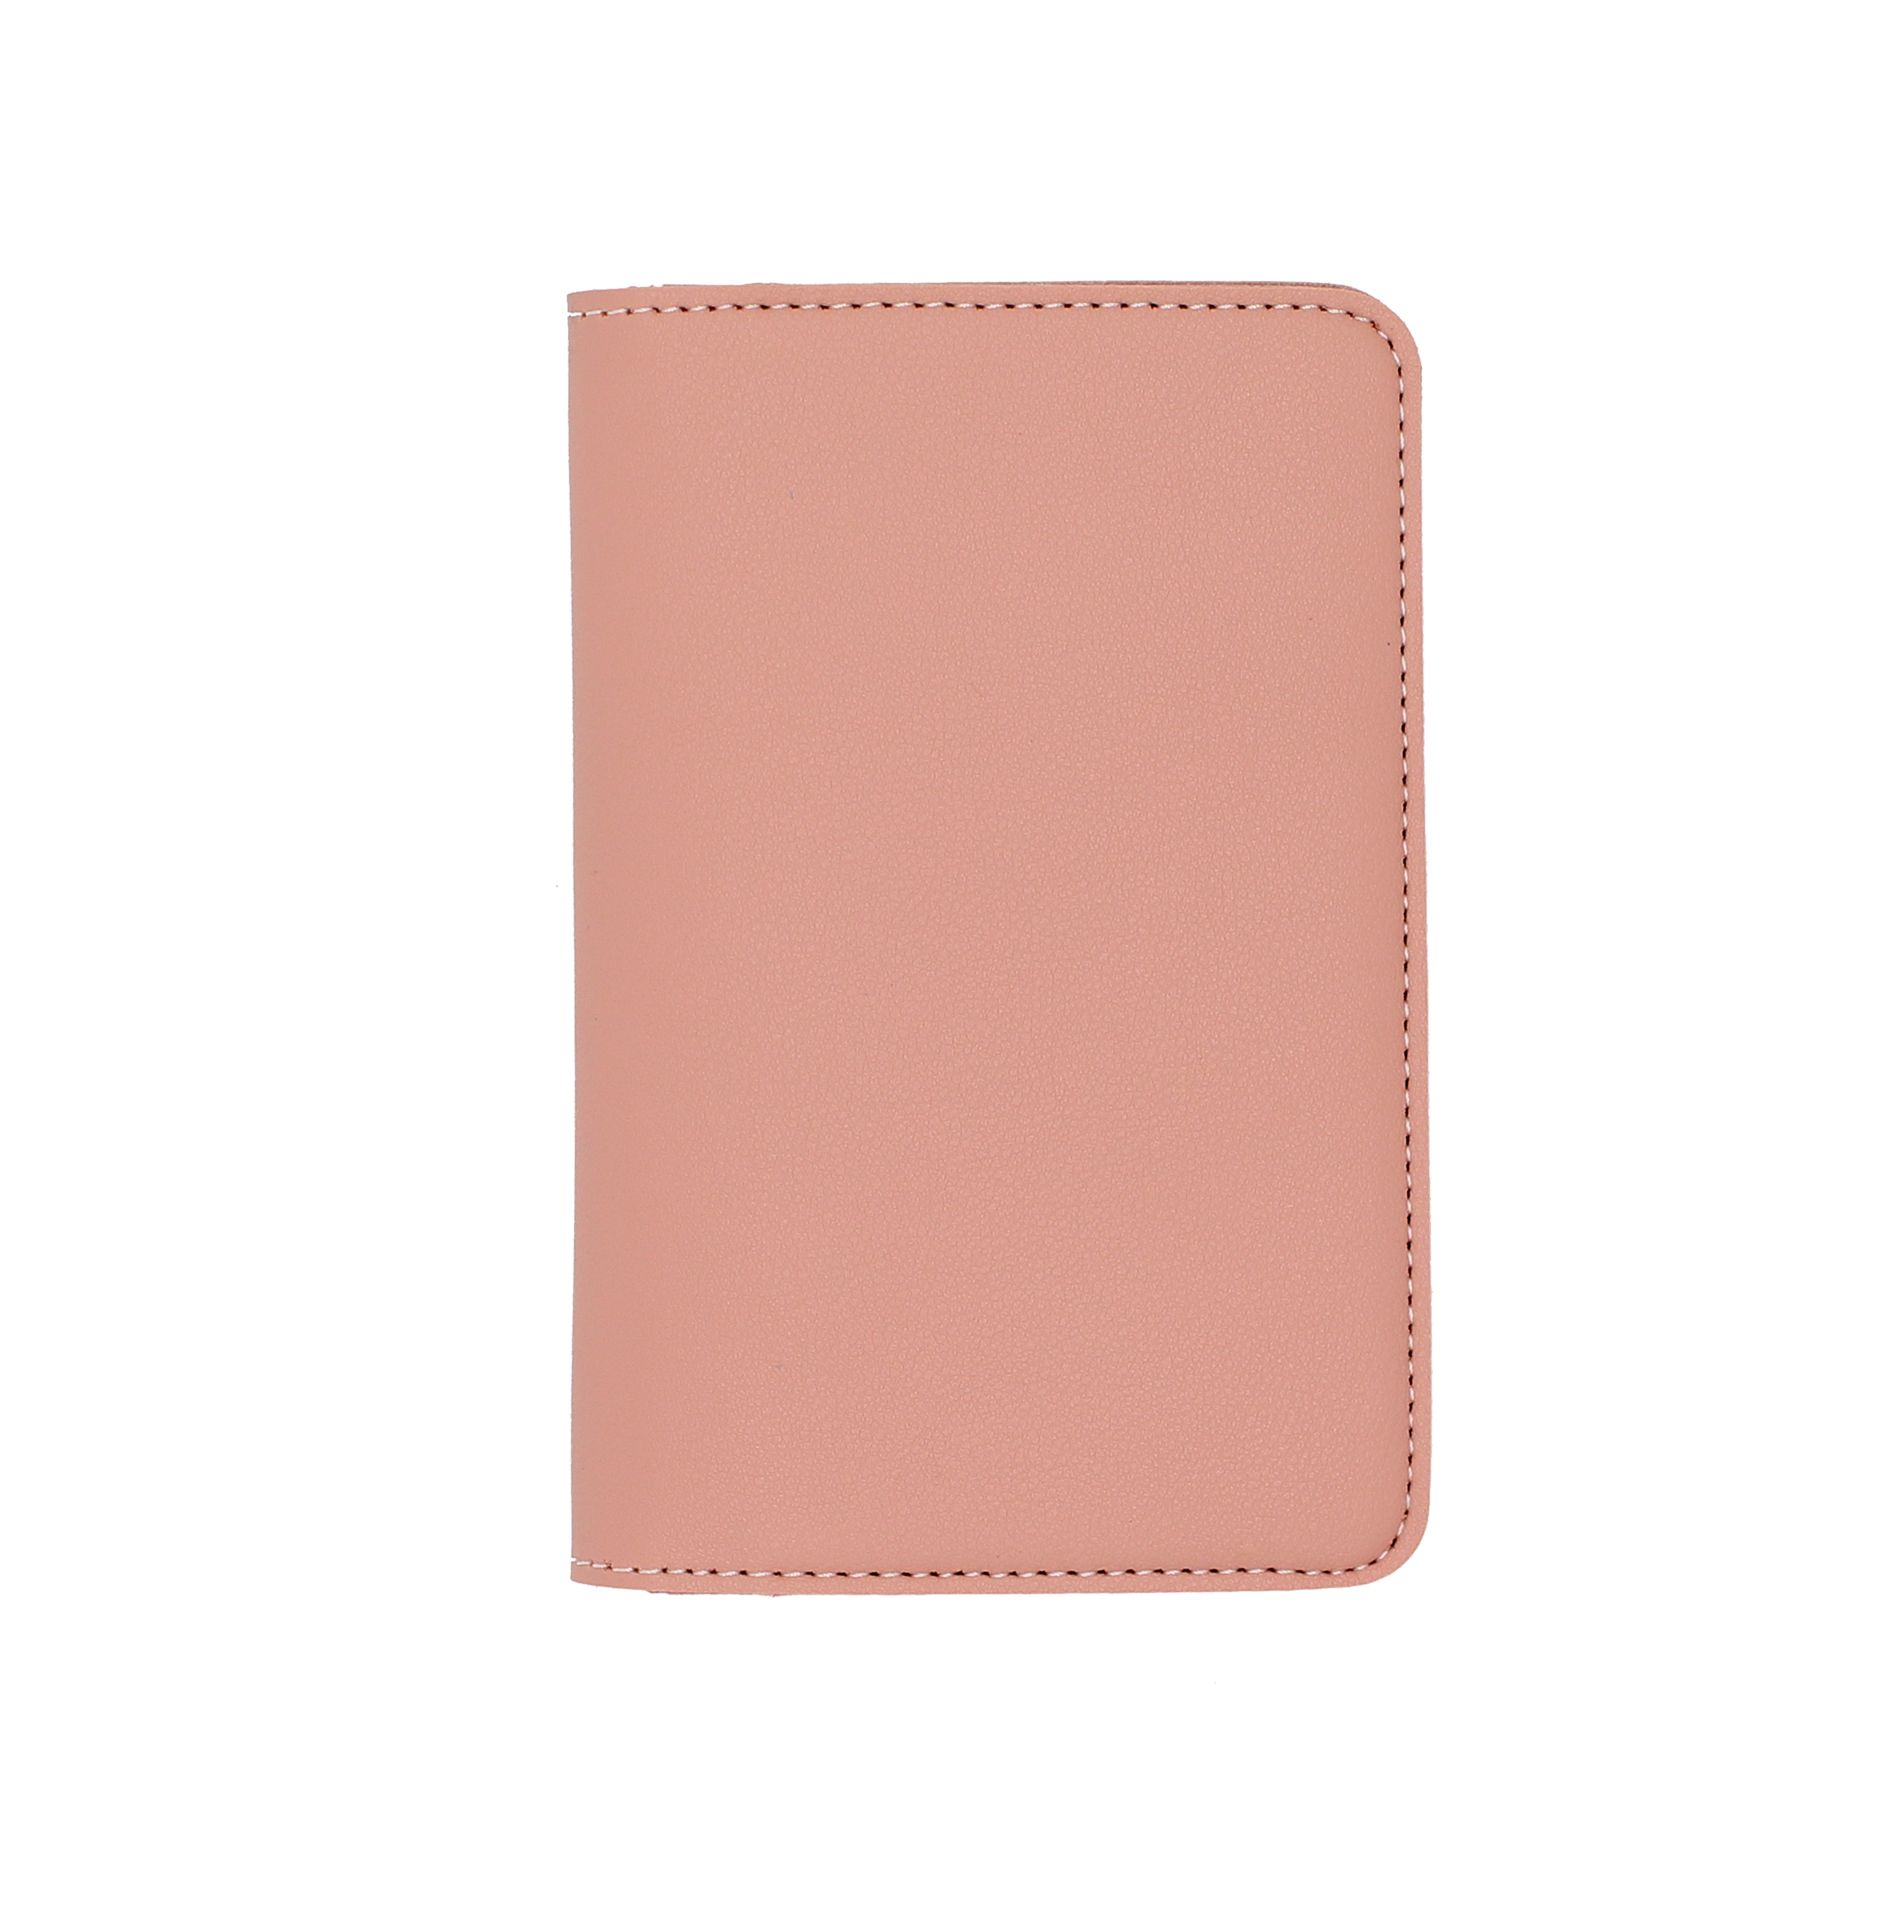 A6 Wallet Insert - Love Note